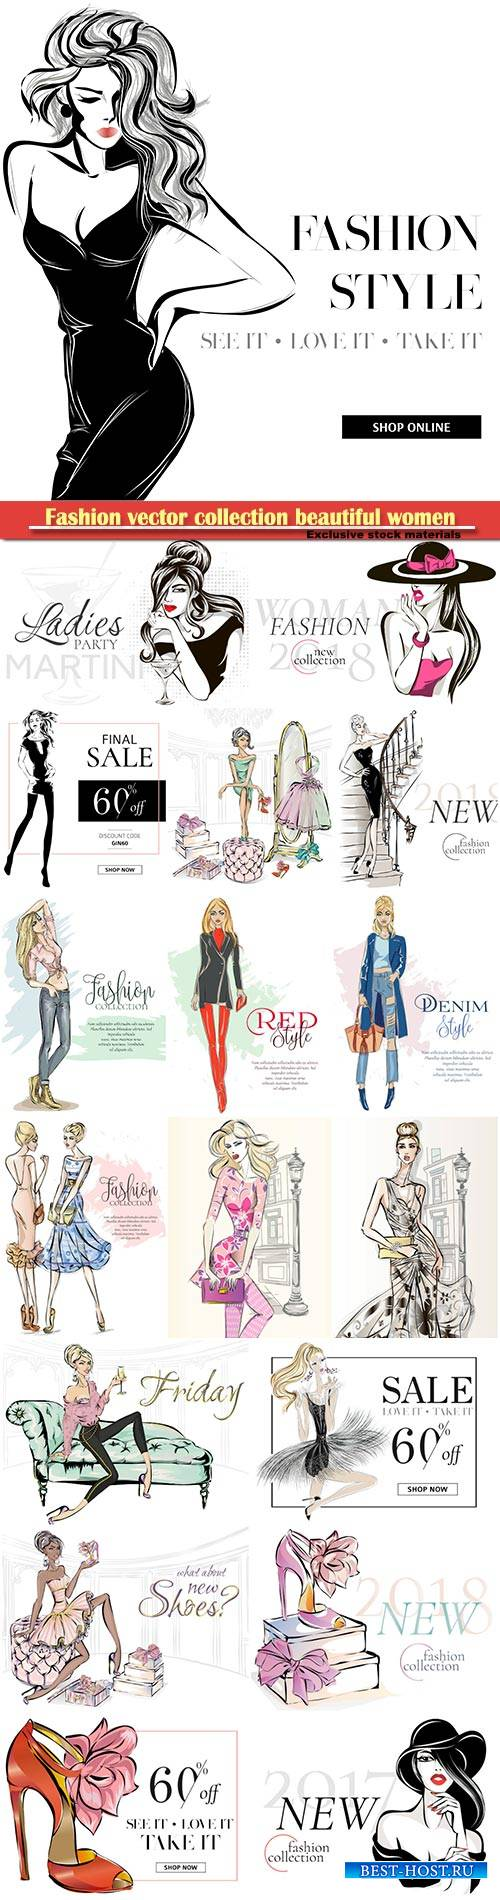 Fashion vector collection beautiful women models